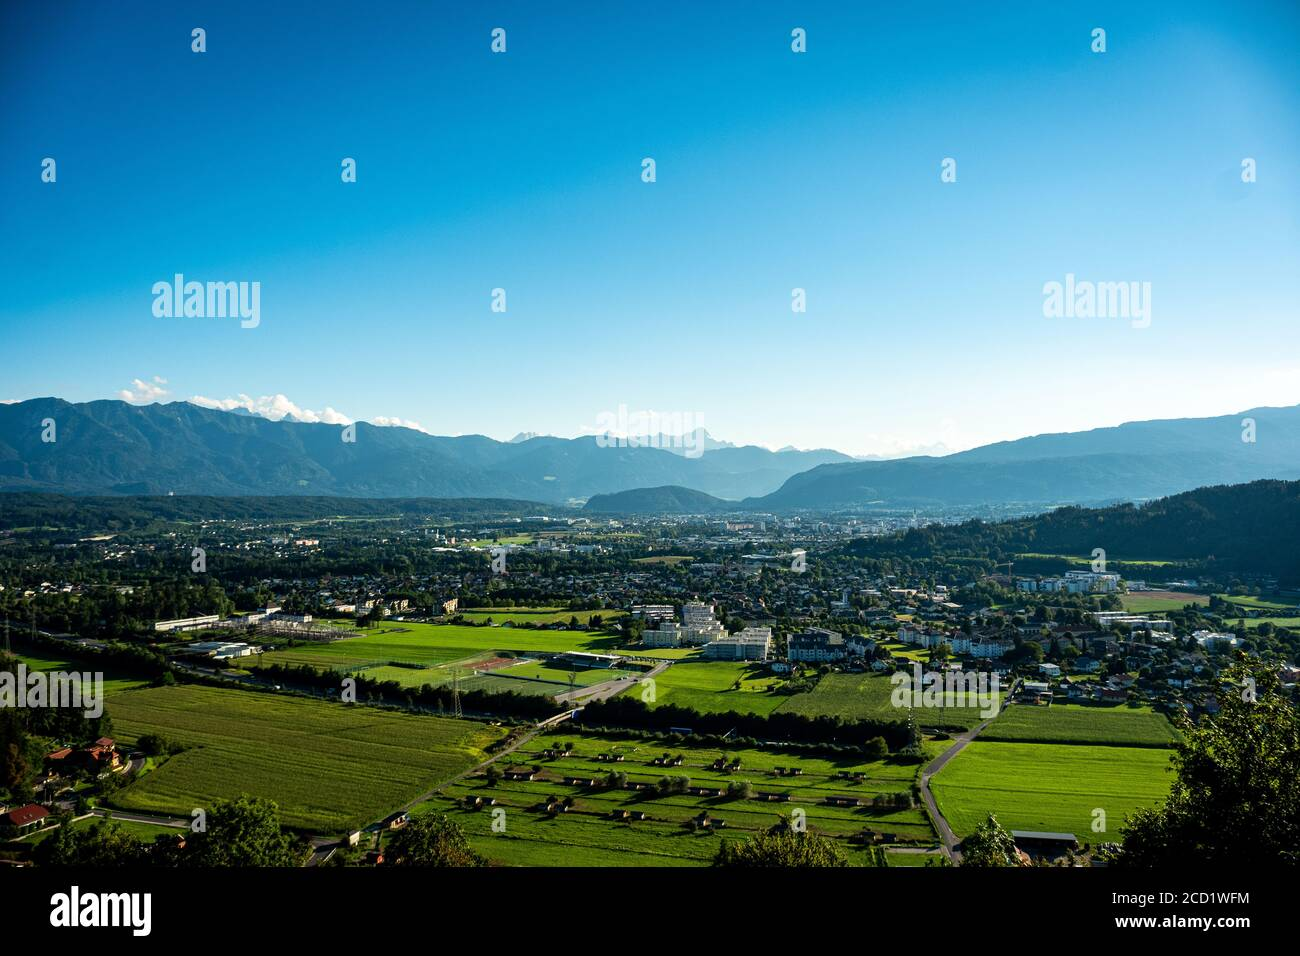 View towards Villach from Landskron Castle Stock Photo